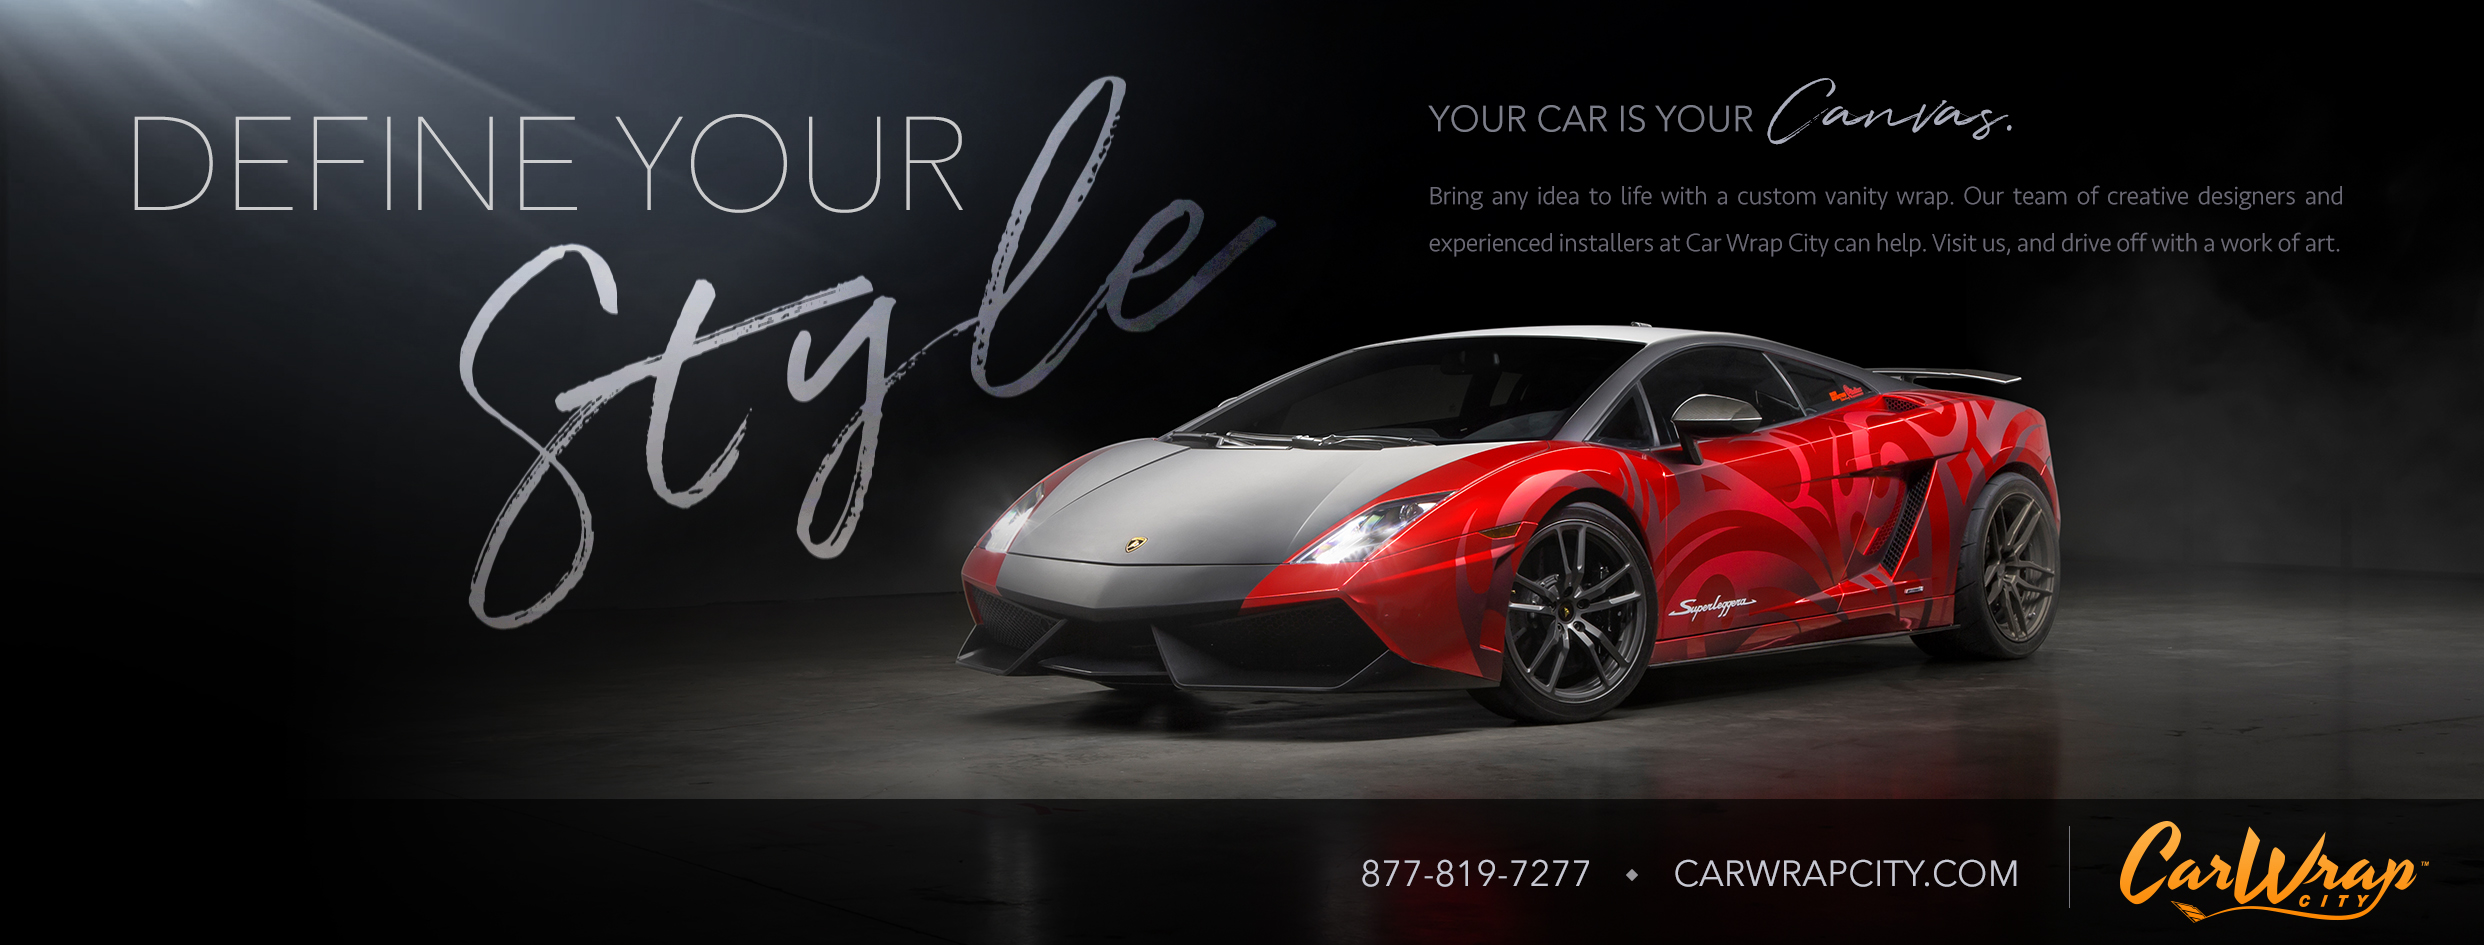 social media marketing banners for car wrap city